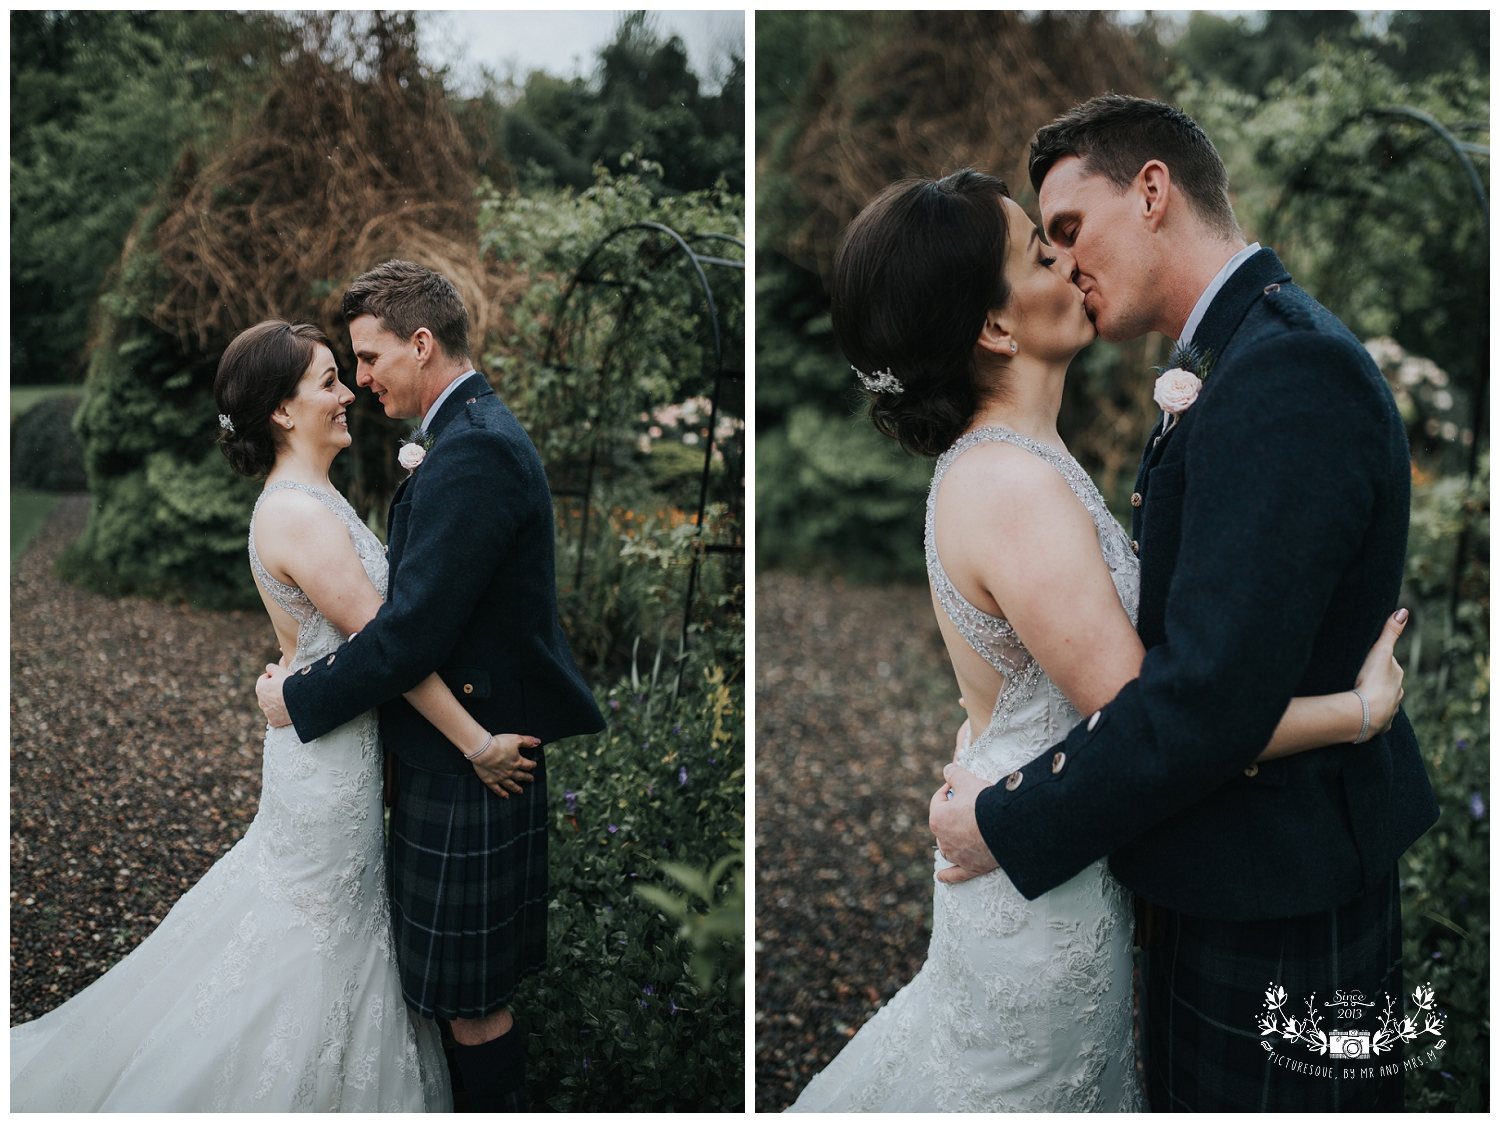 Balbirnie House Wedding, Picturesque by Mr and Mrs M_0041.jpg